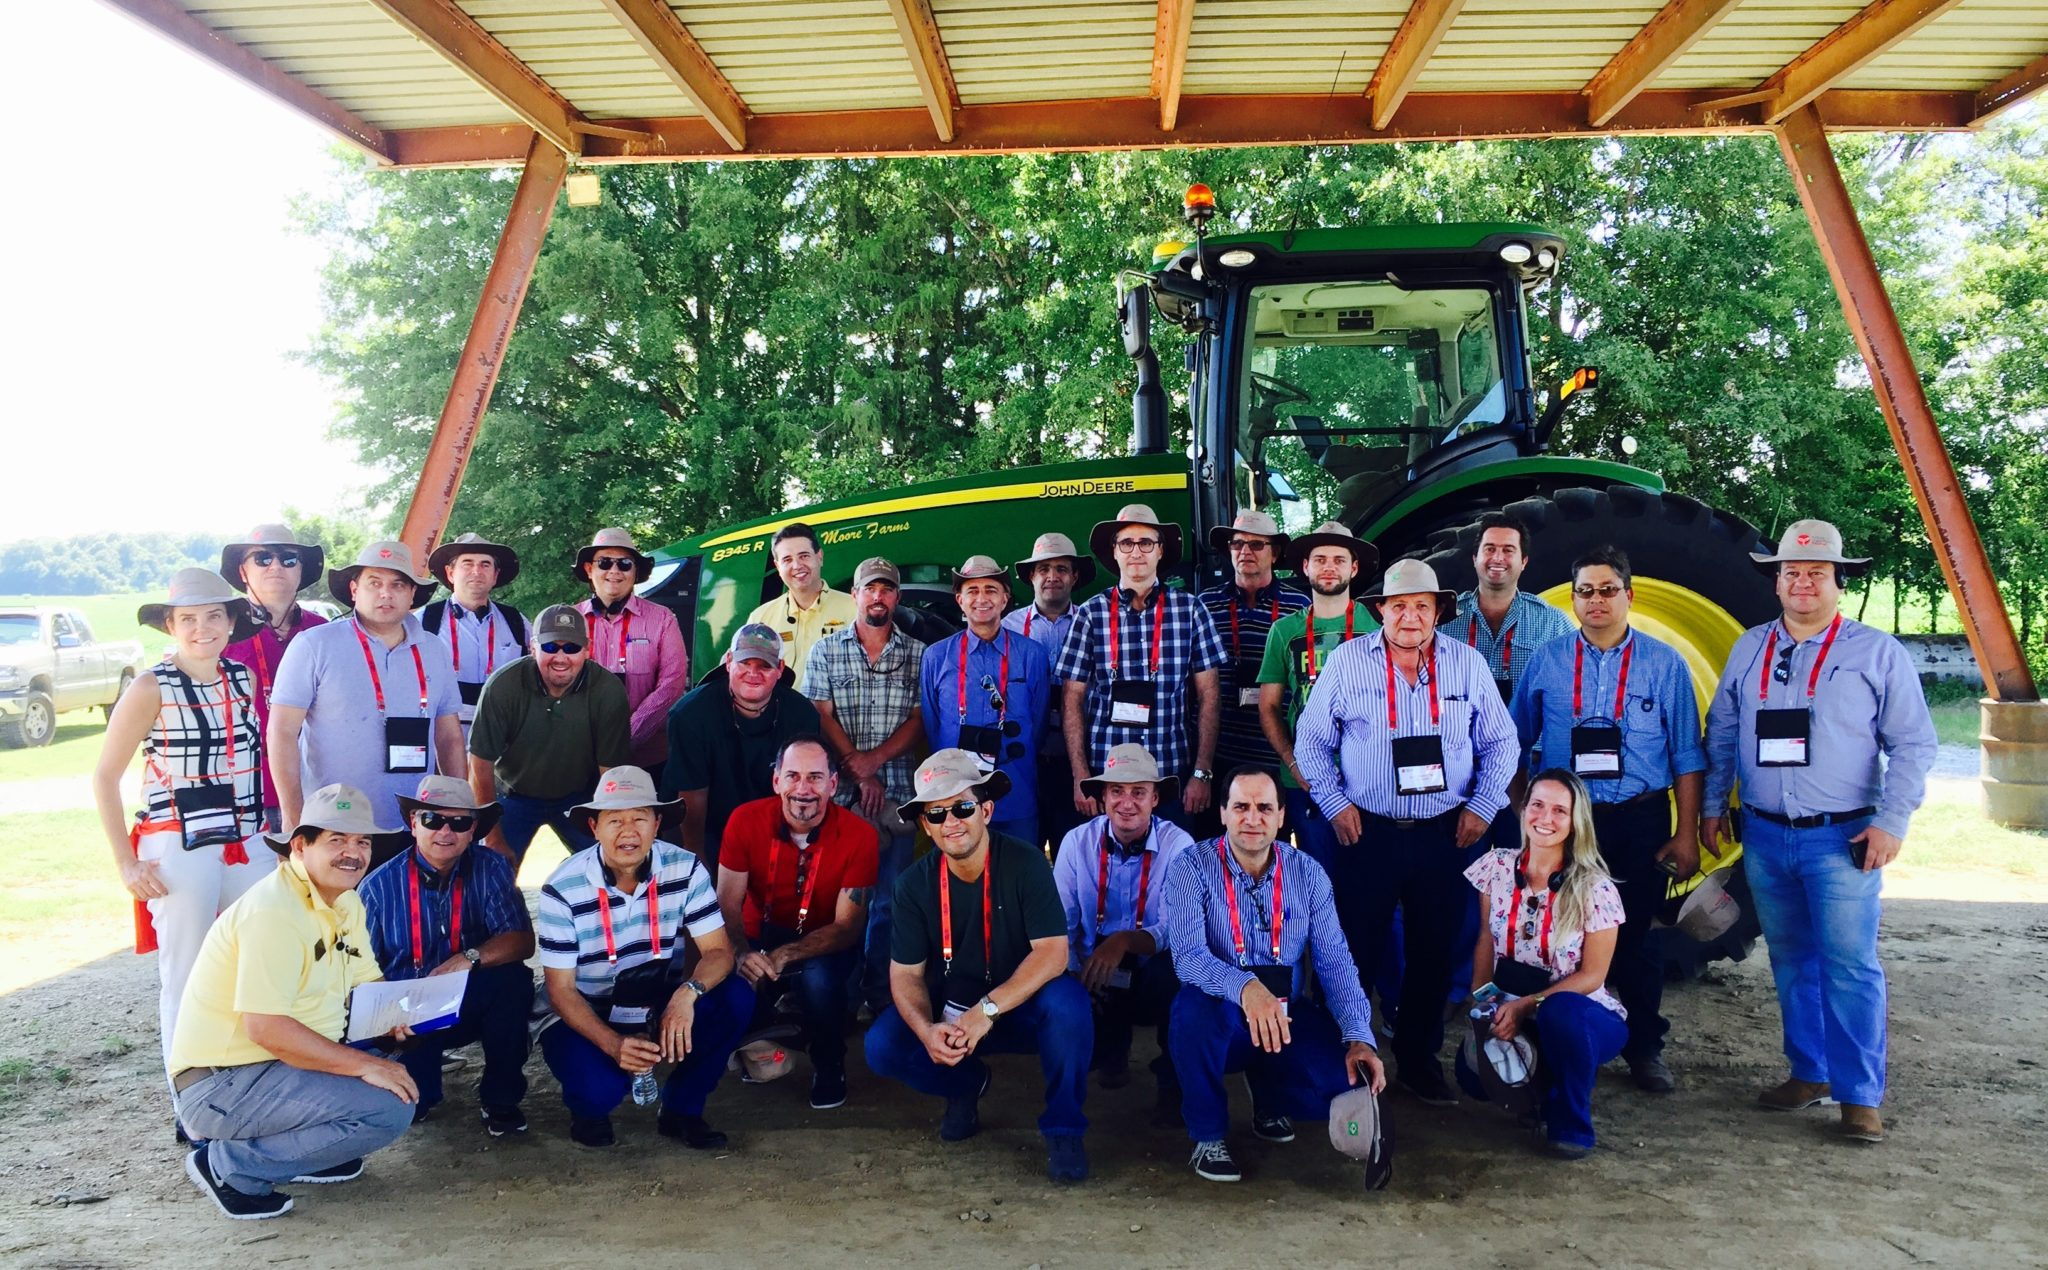 agtours.us tour group farm under open barn by a john green tractor